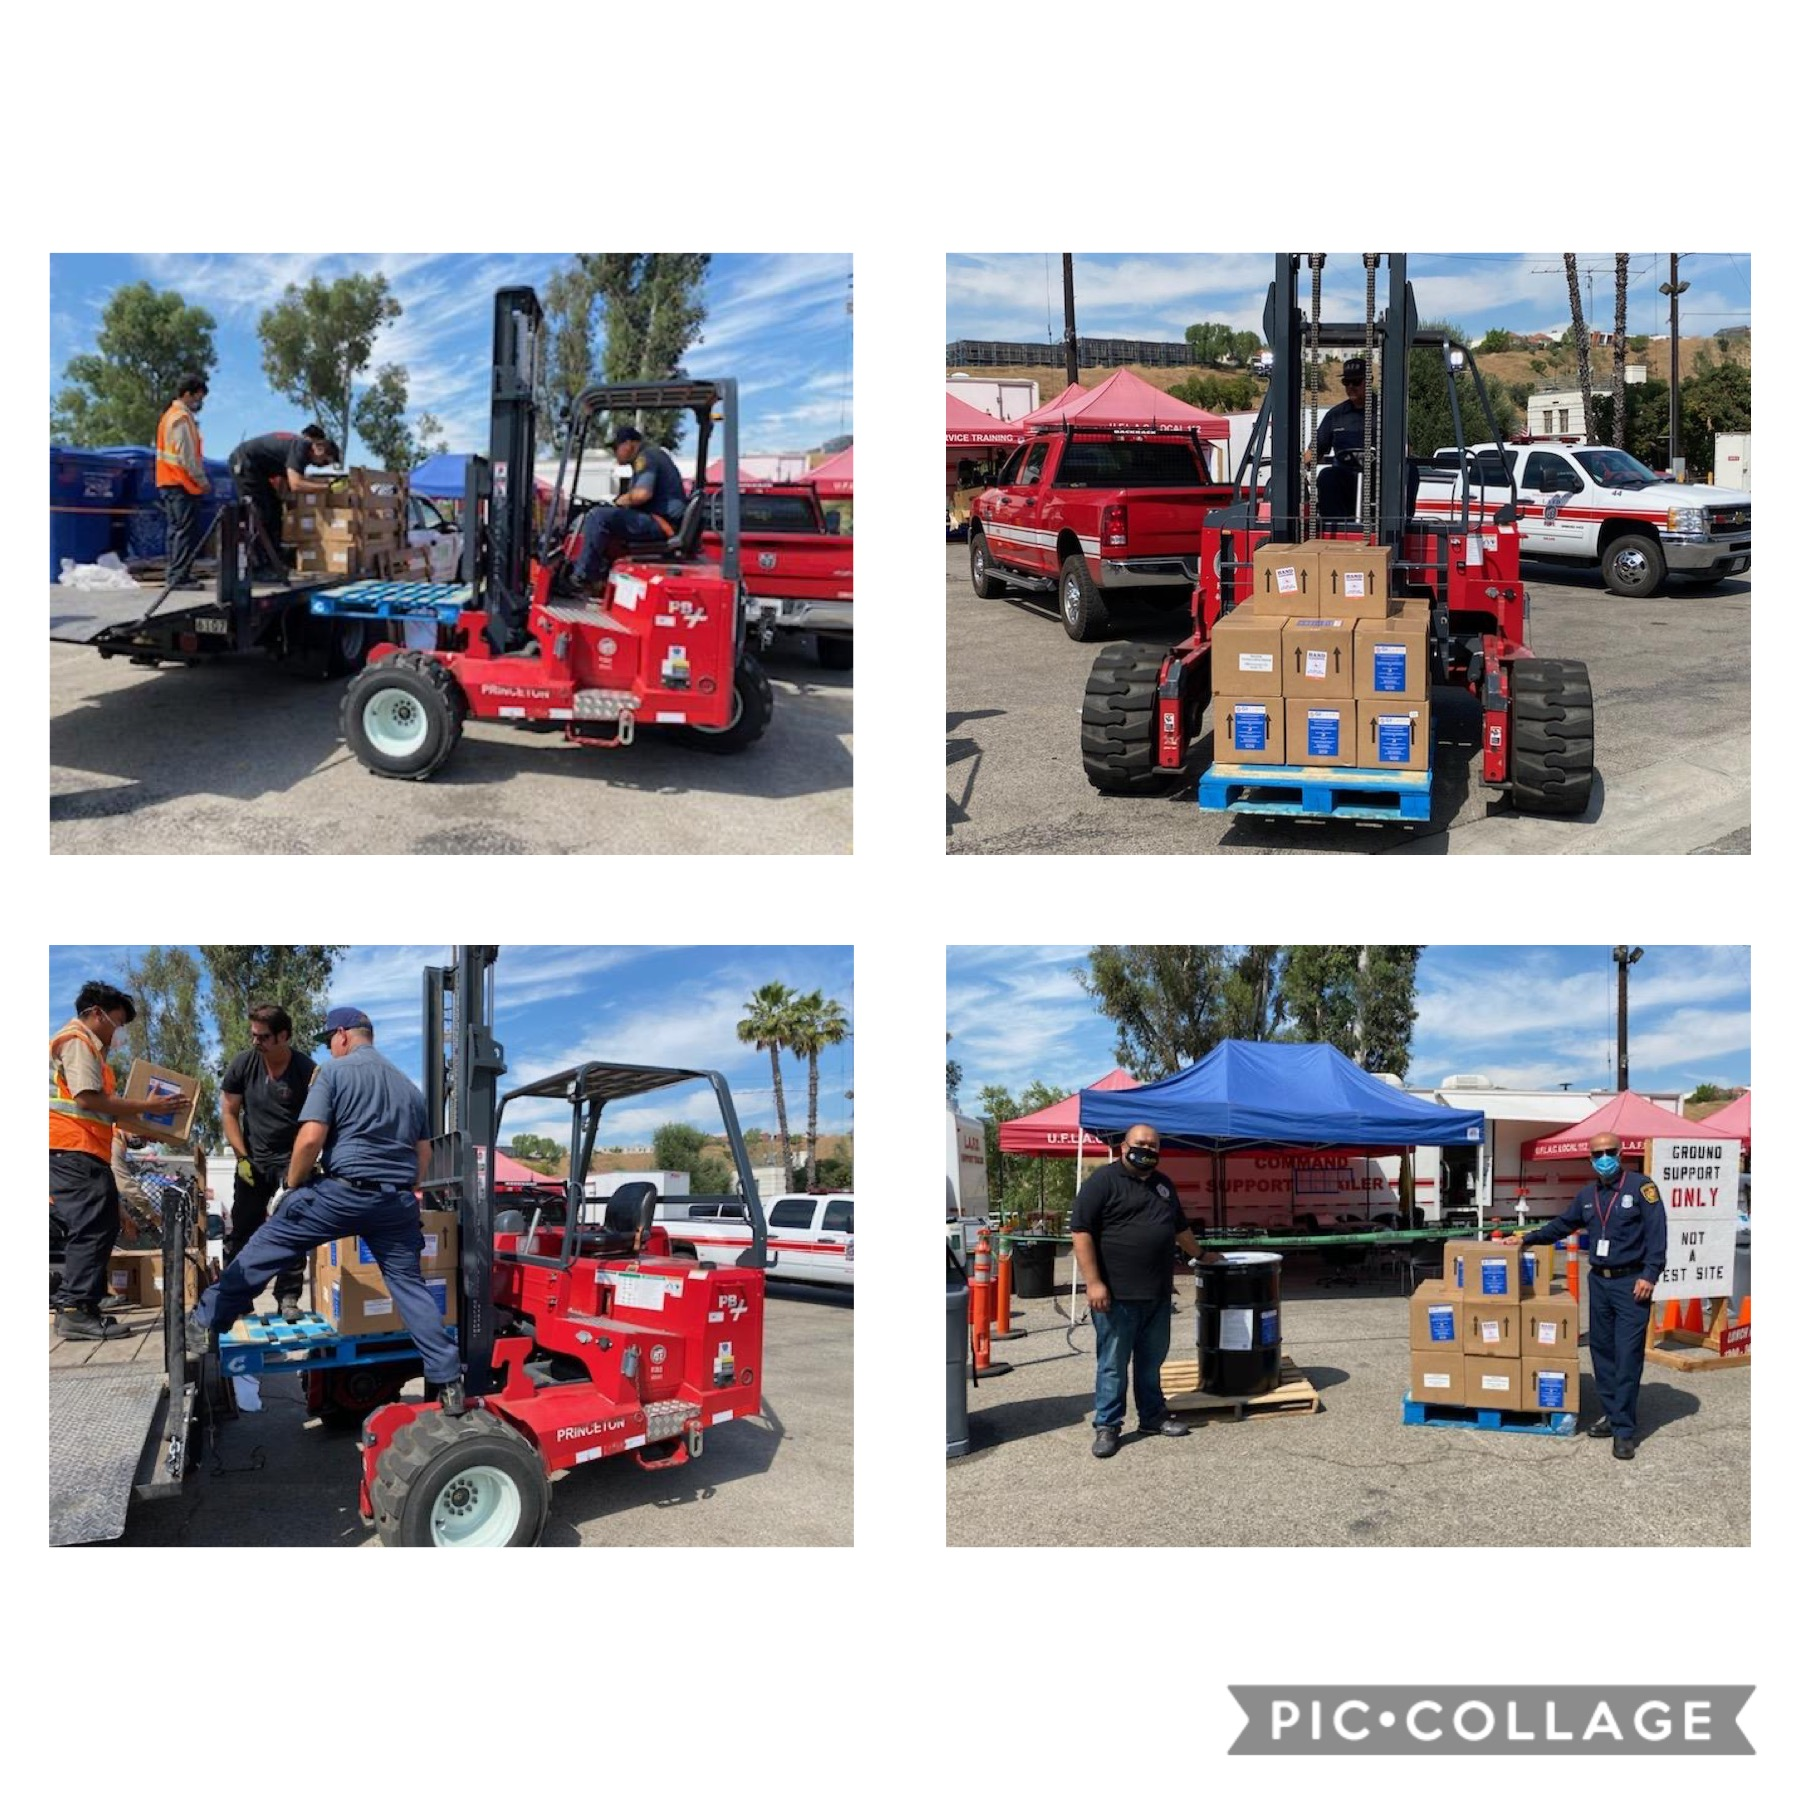 140 Gallons Hand Sanitizer Delivered to LAFD 6-12-2020 COLLAGE